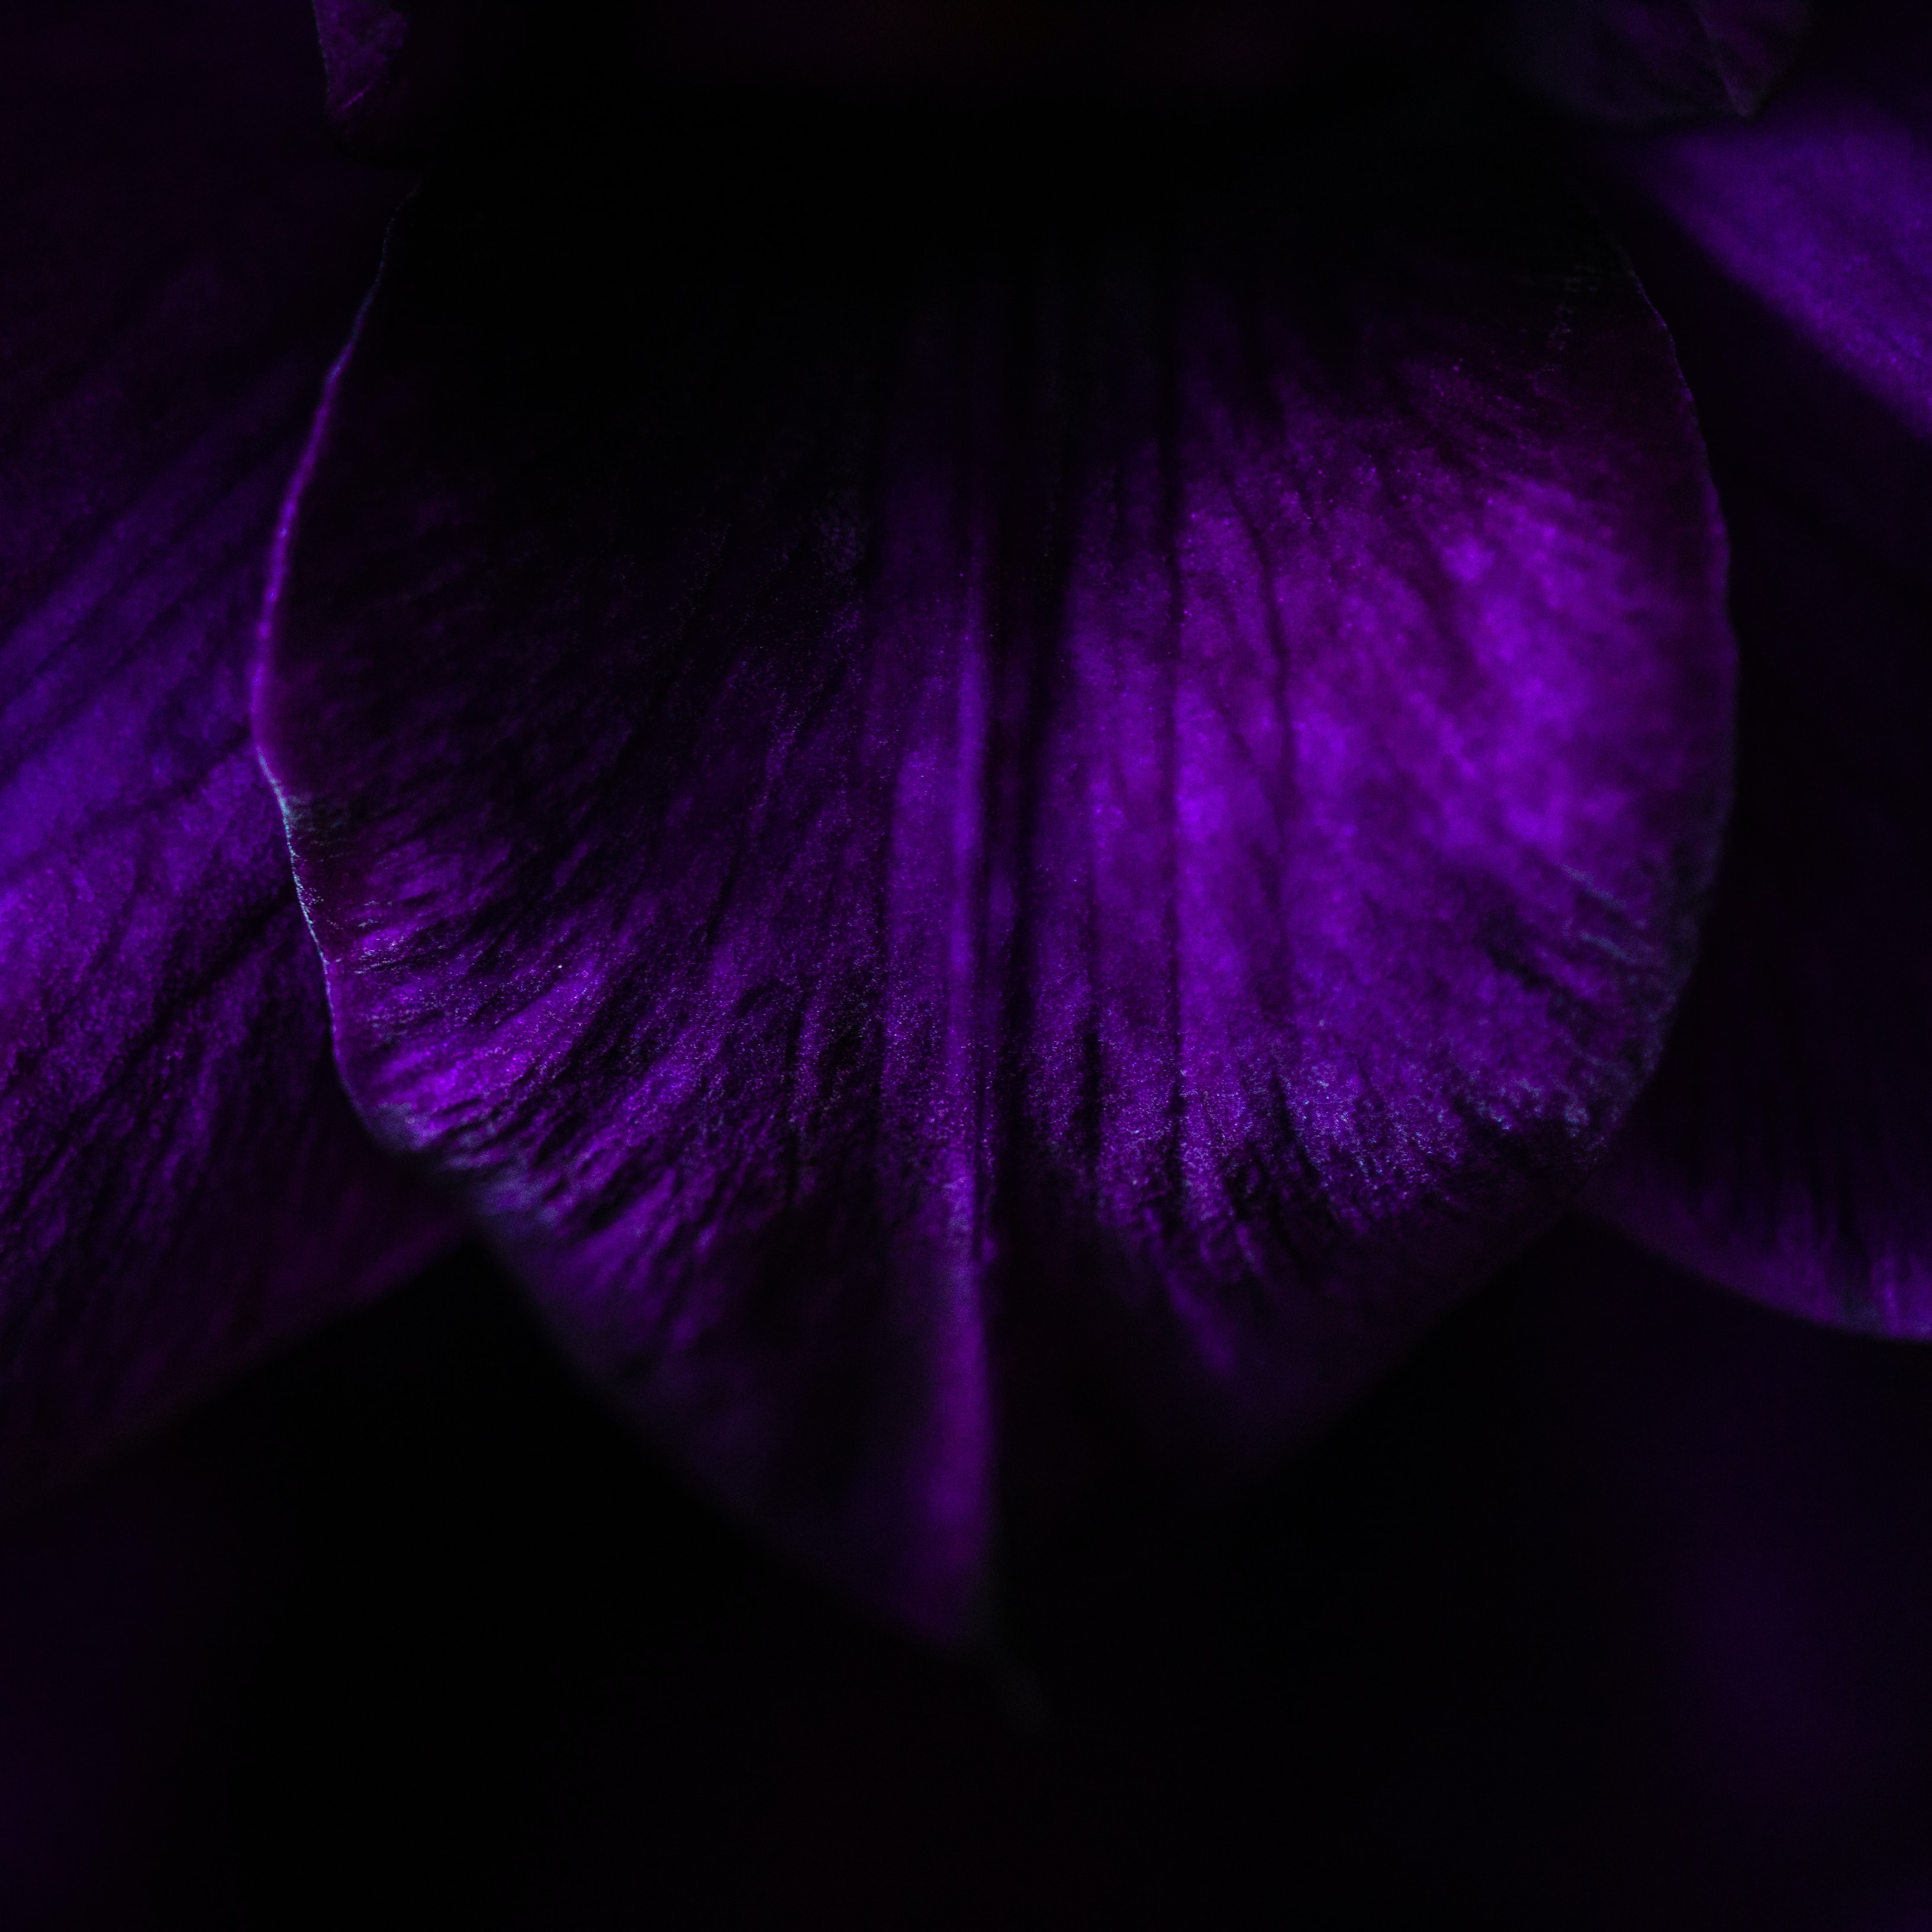 purple flower petal